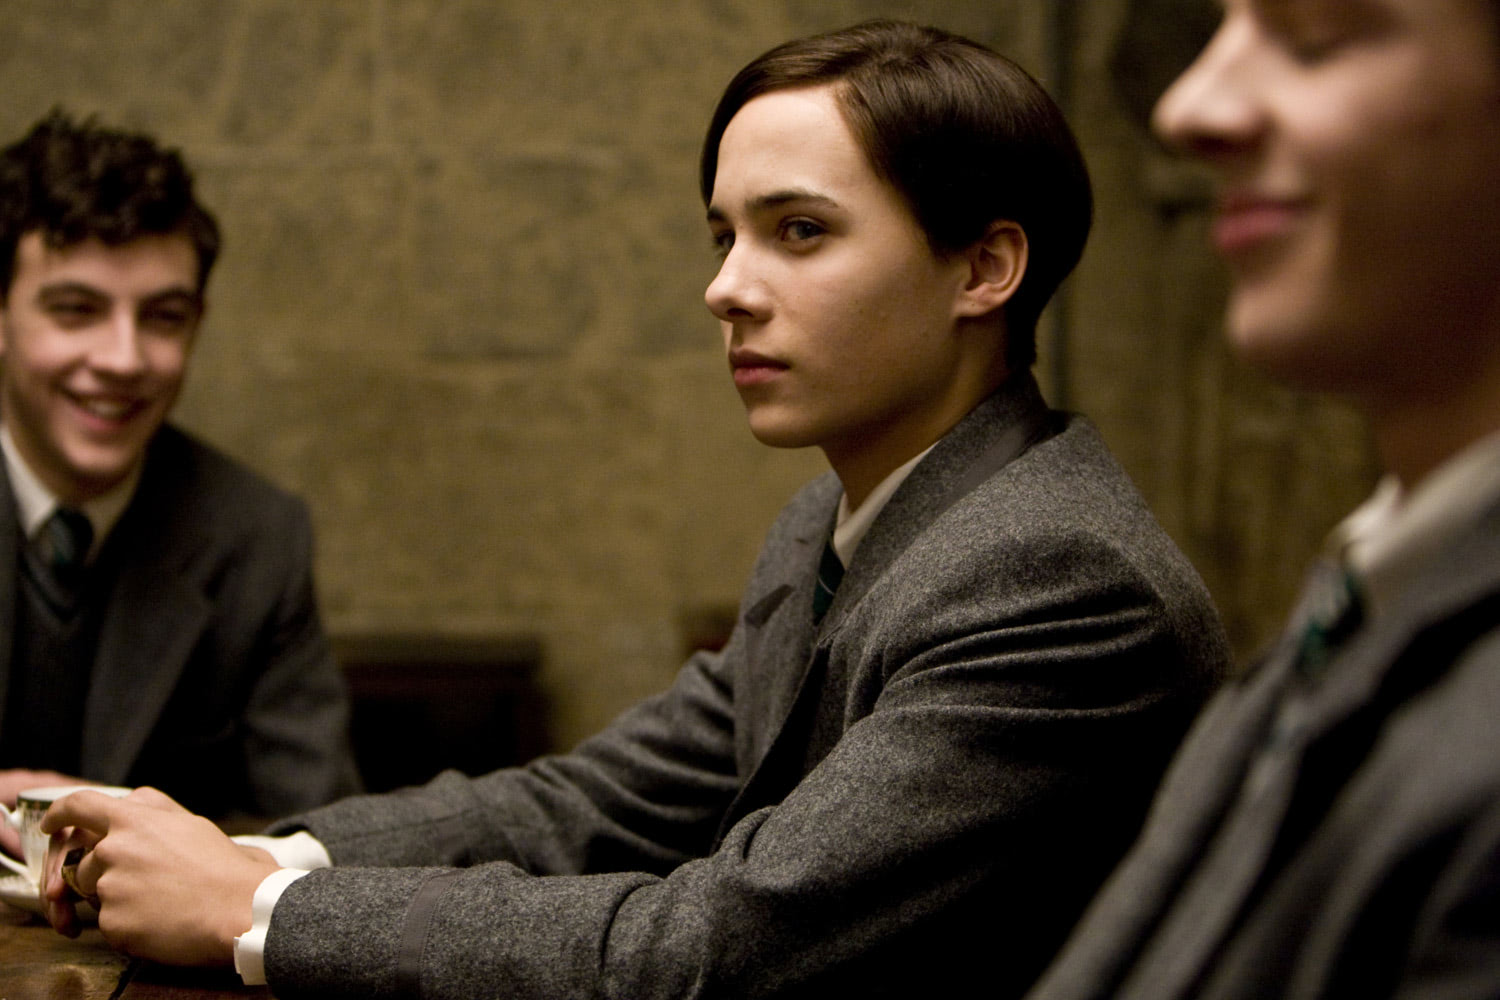 Tom Riddle at the Slug Club